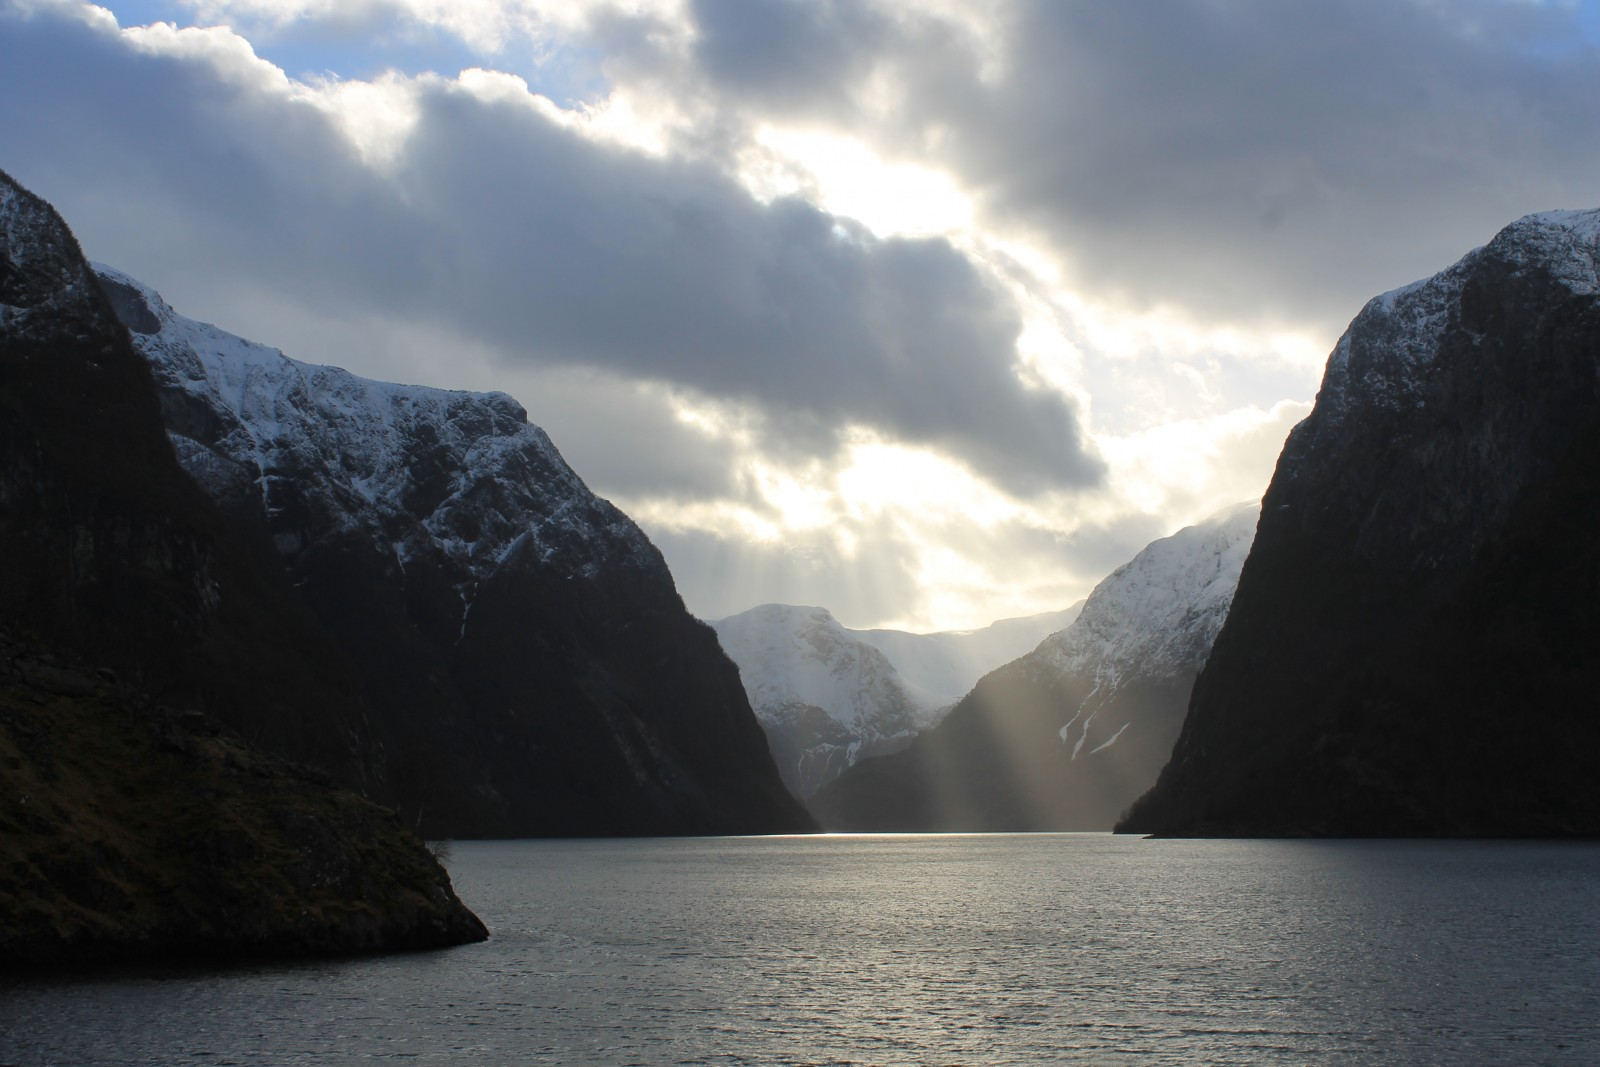 Nærøyfjord: The world's most narrow fjord . Credit: Sarah Connors (distributed via imaggeo.egu.eu)